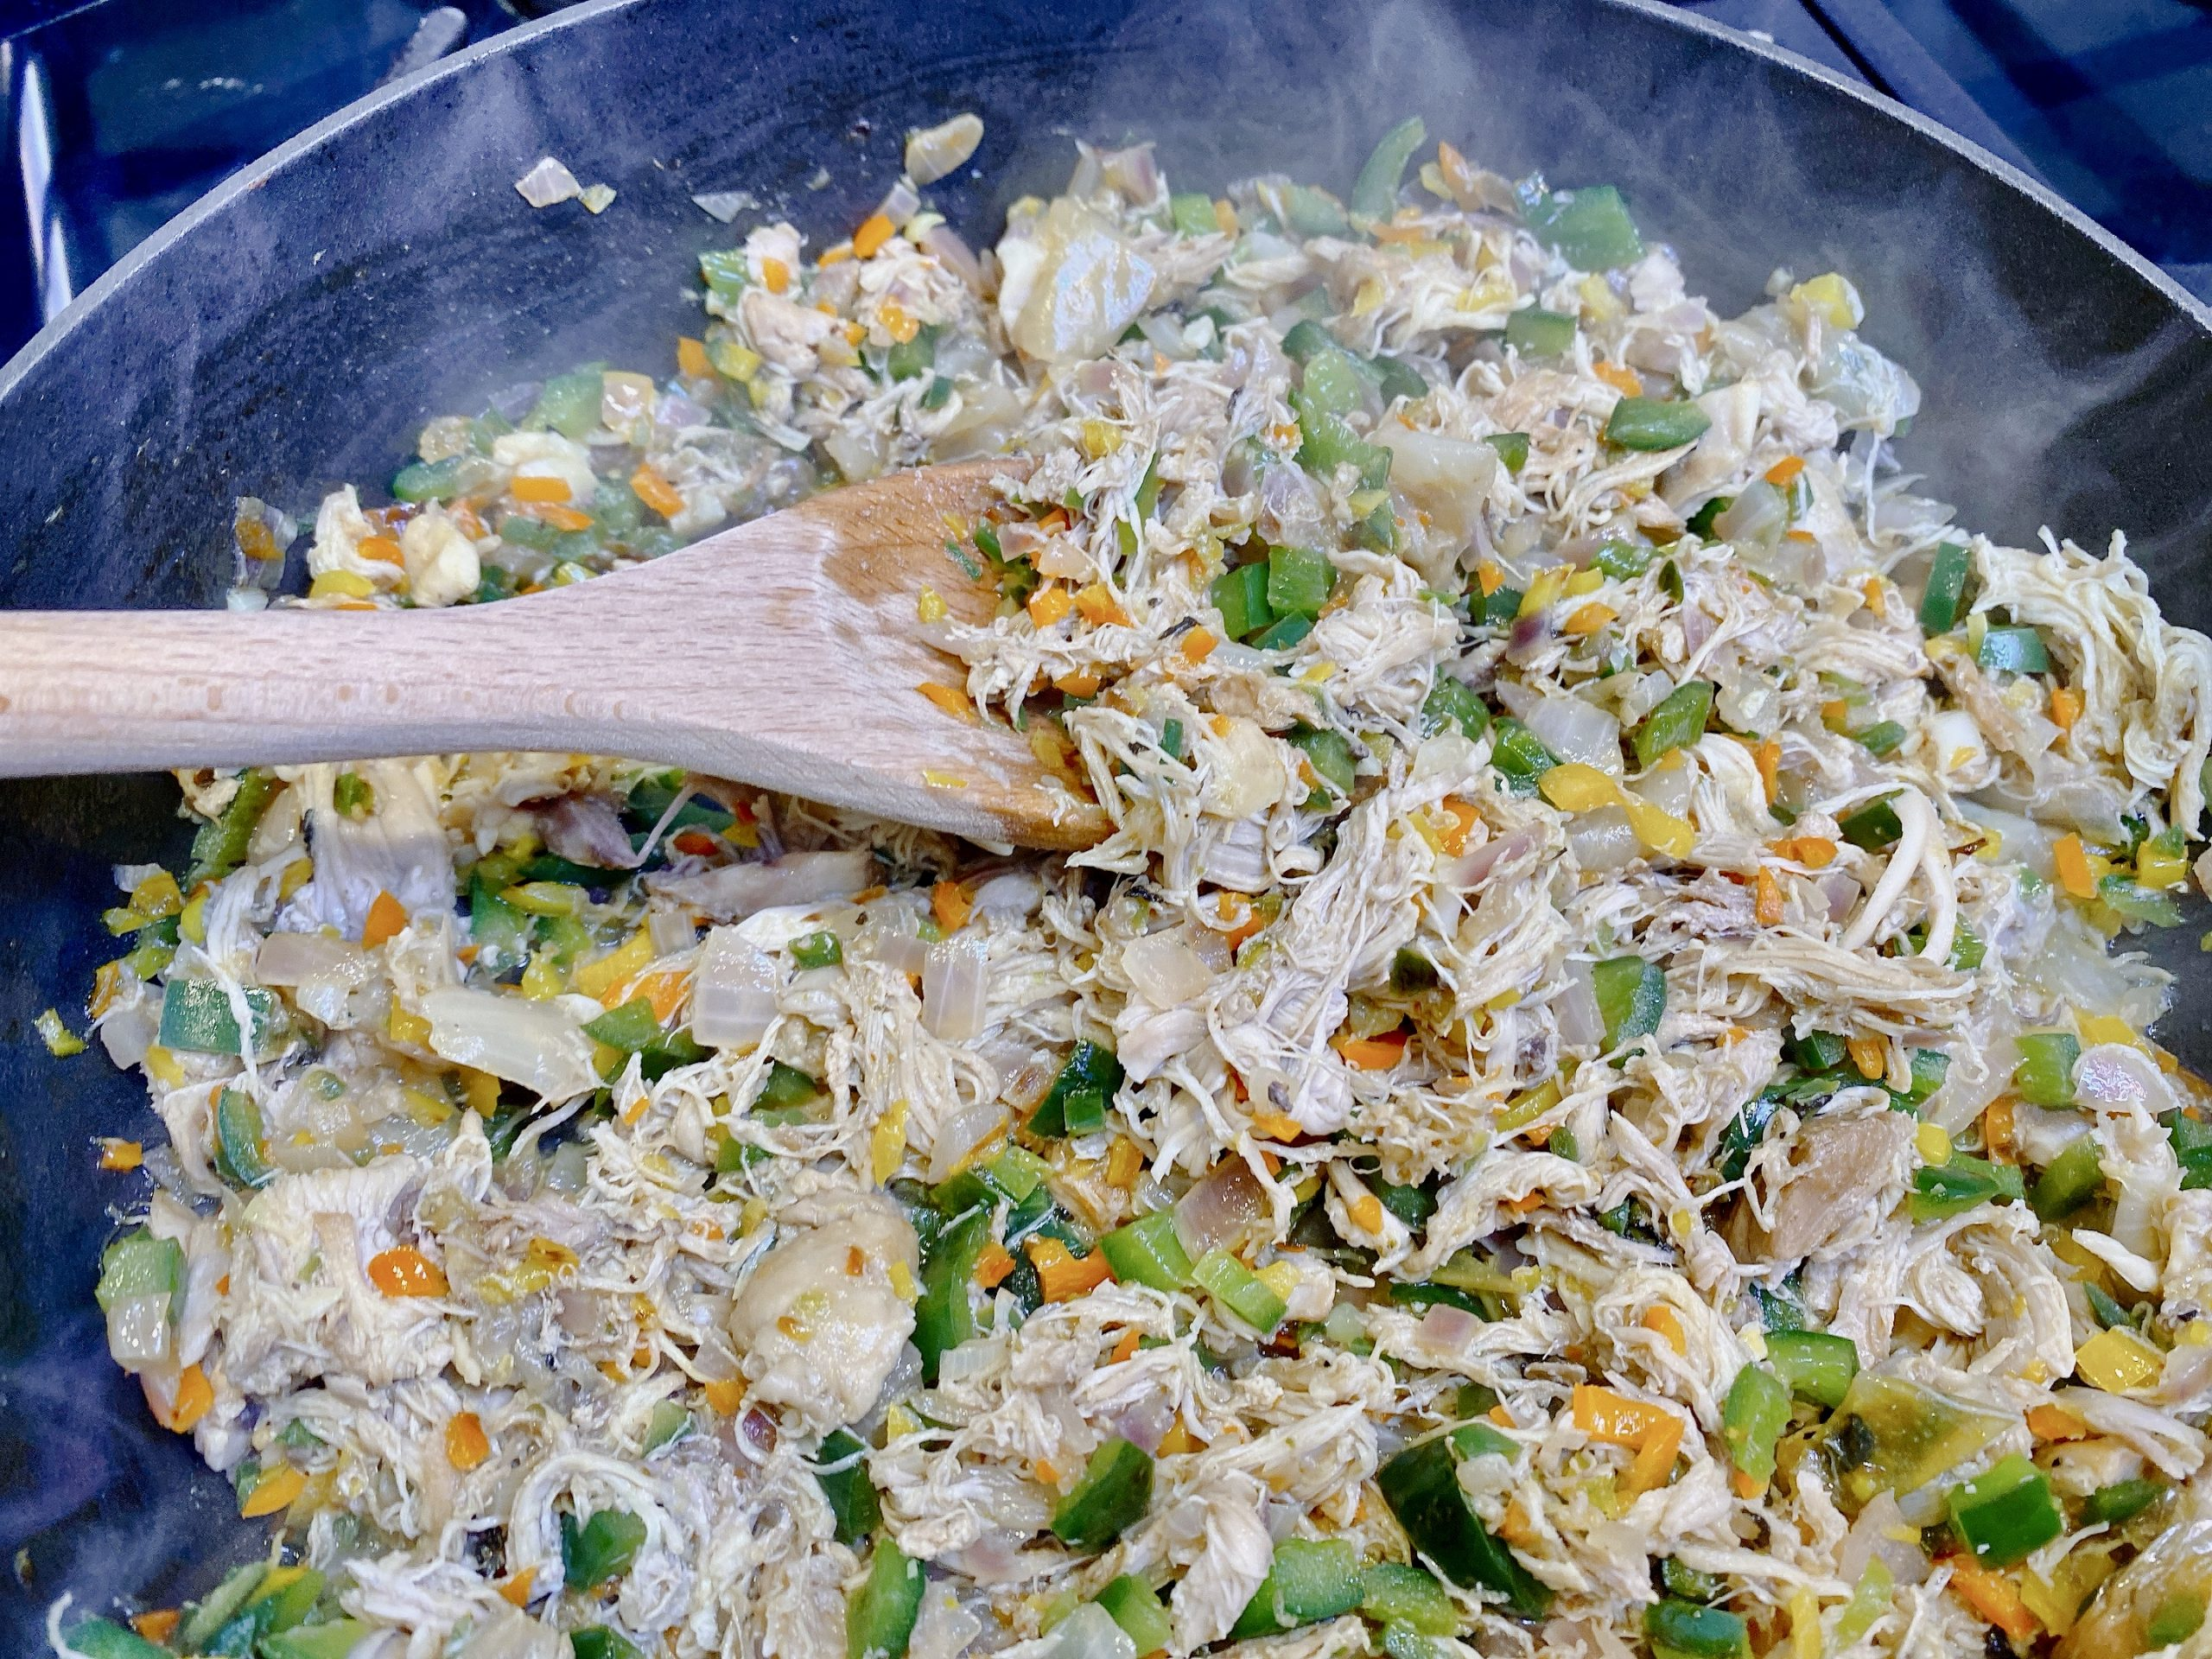 stirring chicken flauta stuffing in pan over stove with wooden spoon